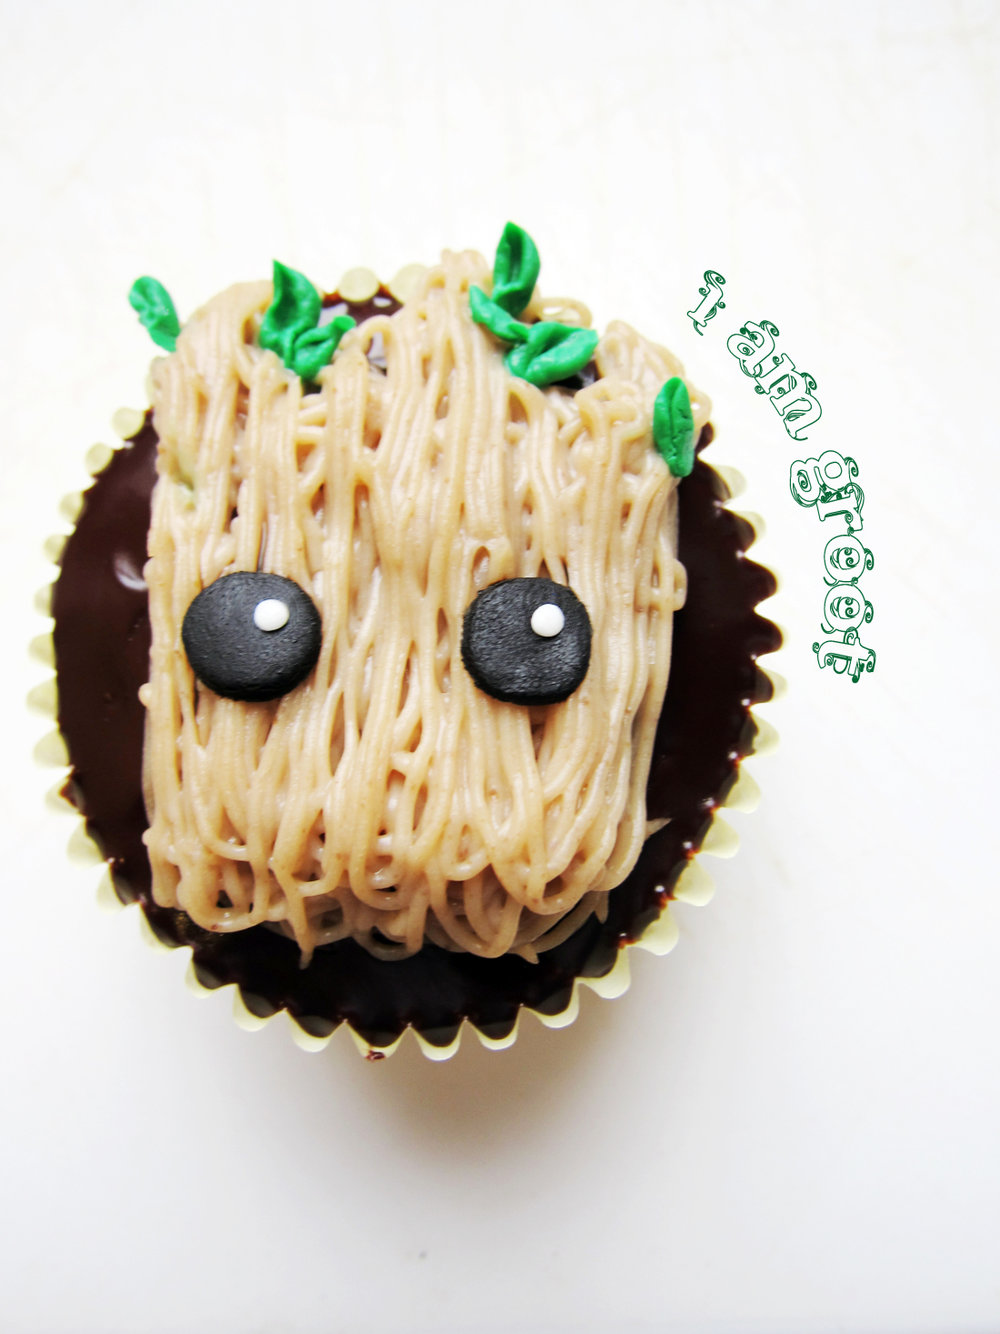 The Busy Spatula  designed these adorable little Groot cupcakes! And they're actually easier to make than they look! Click the photo for the full recipe!